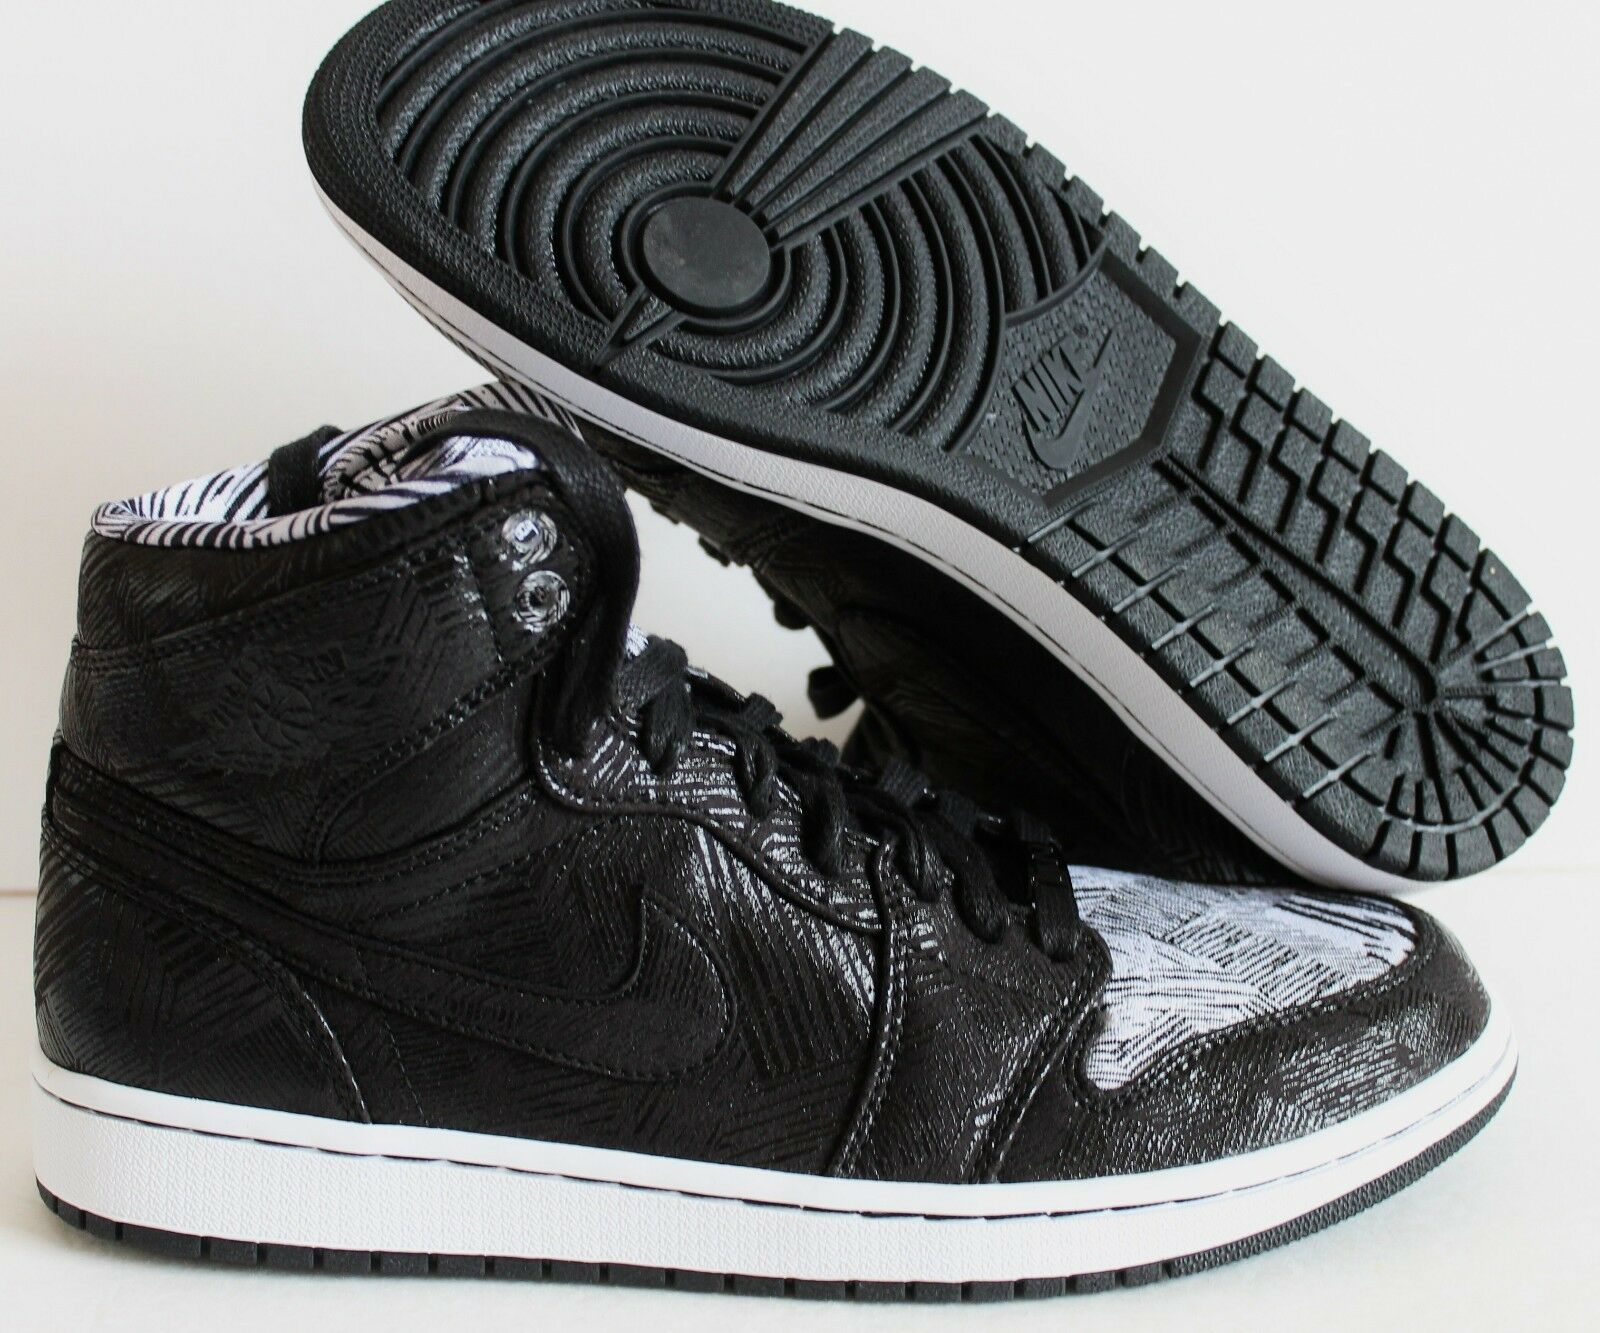 AIR JORDAN 1 RETRO HIGH BHM BLACK HISTORY MONTH SZ 10.5  [579591-010]